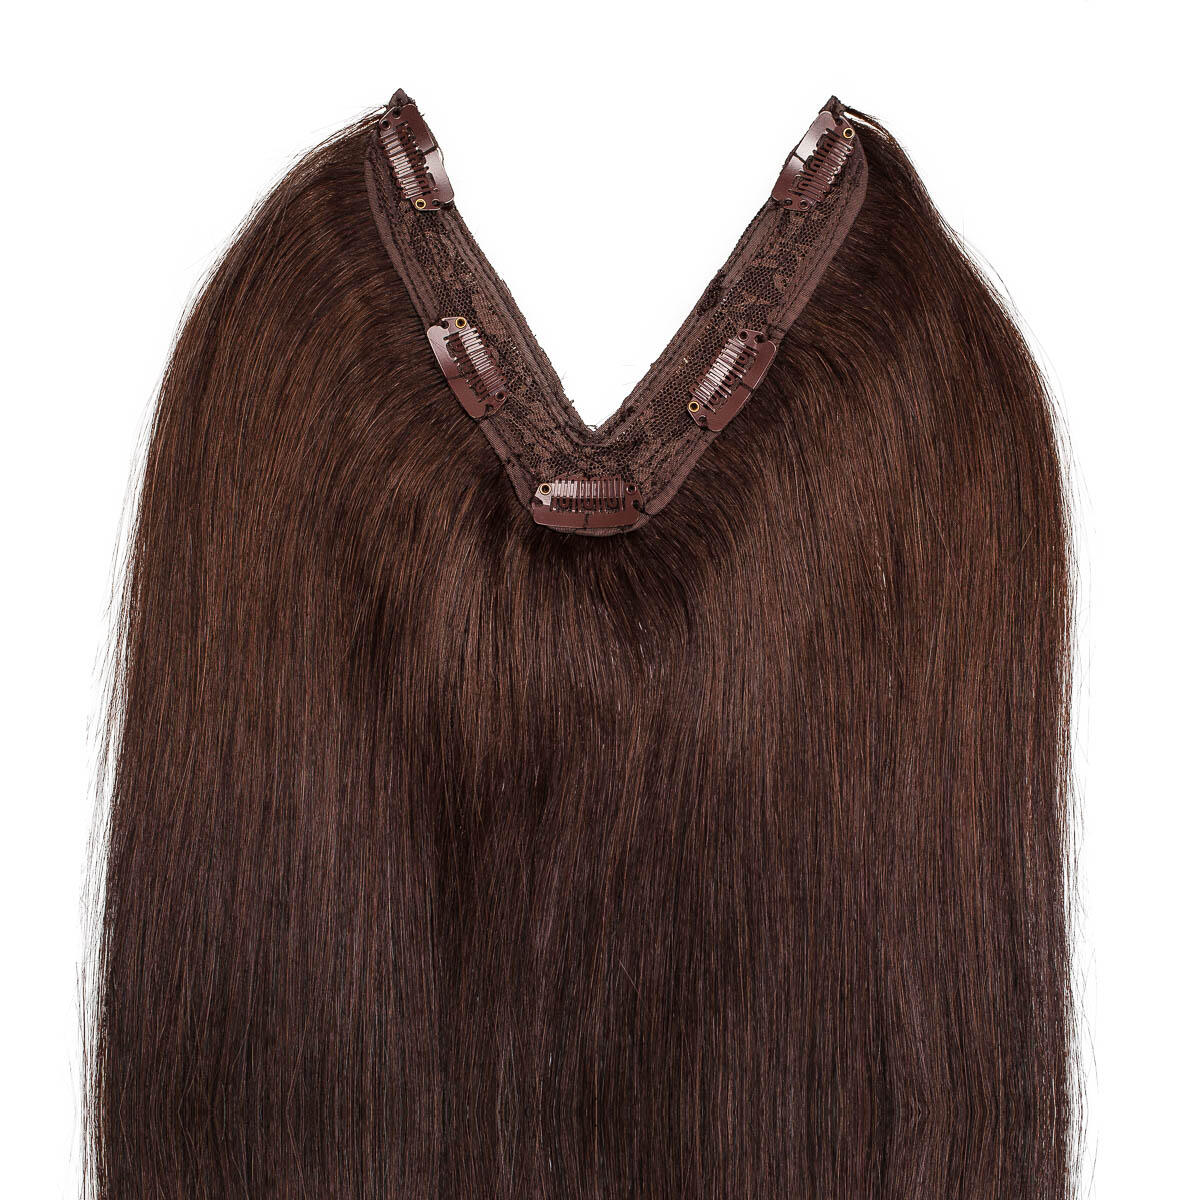 Easy Clip-in 2.2 Coffee Brown 50 cm